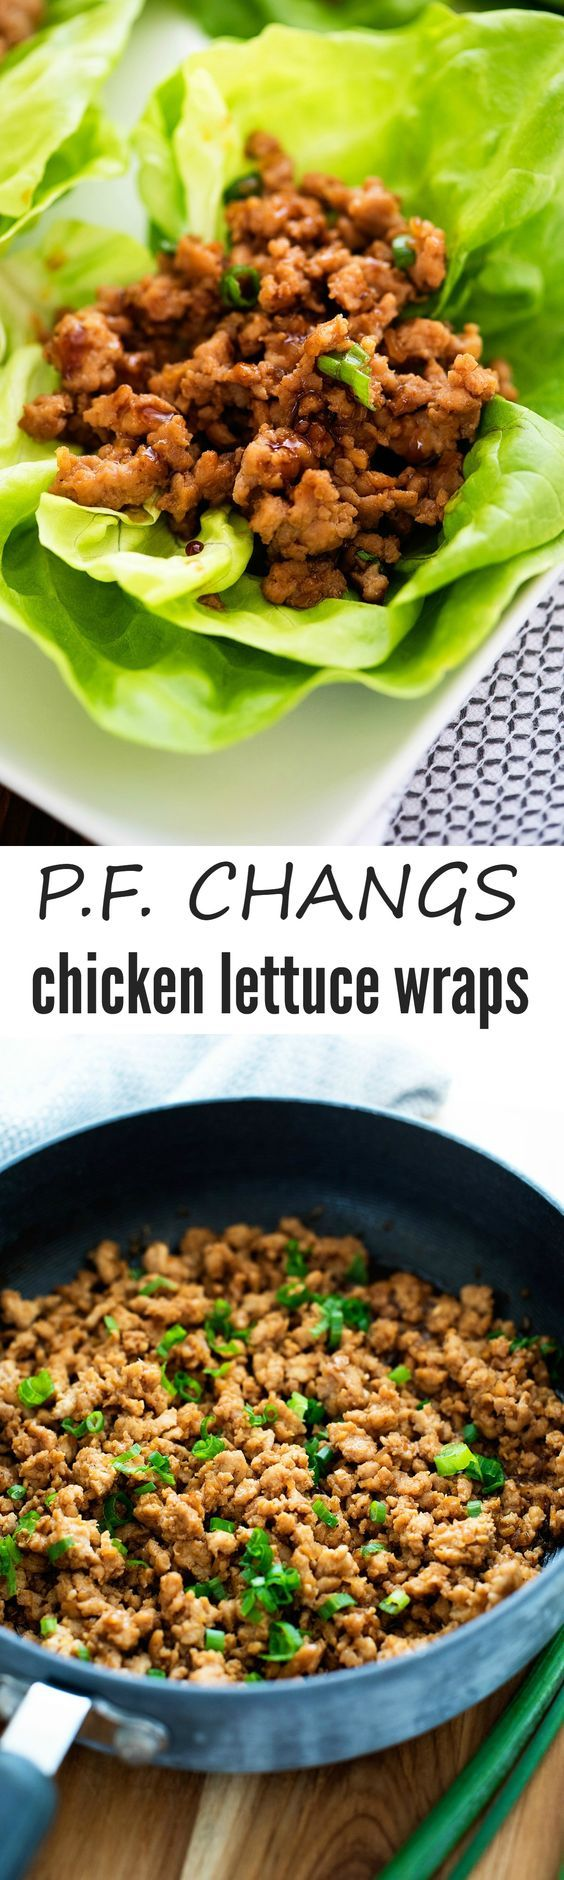 Copycat P.F. Chang's chicken lettuce wraps! These taste amazing!